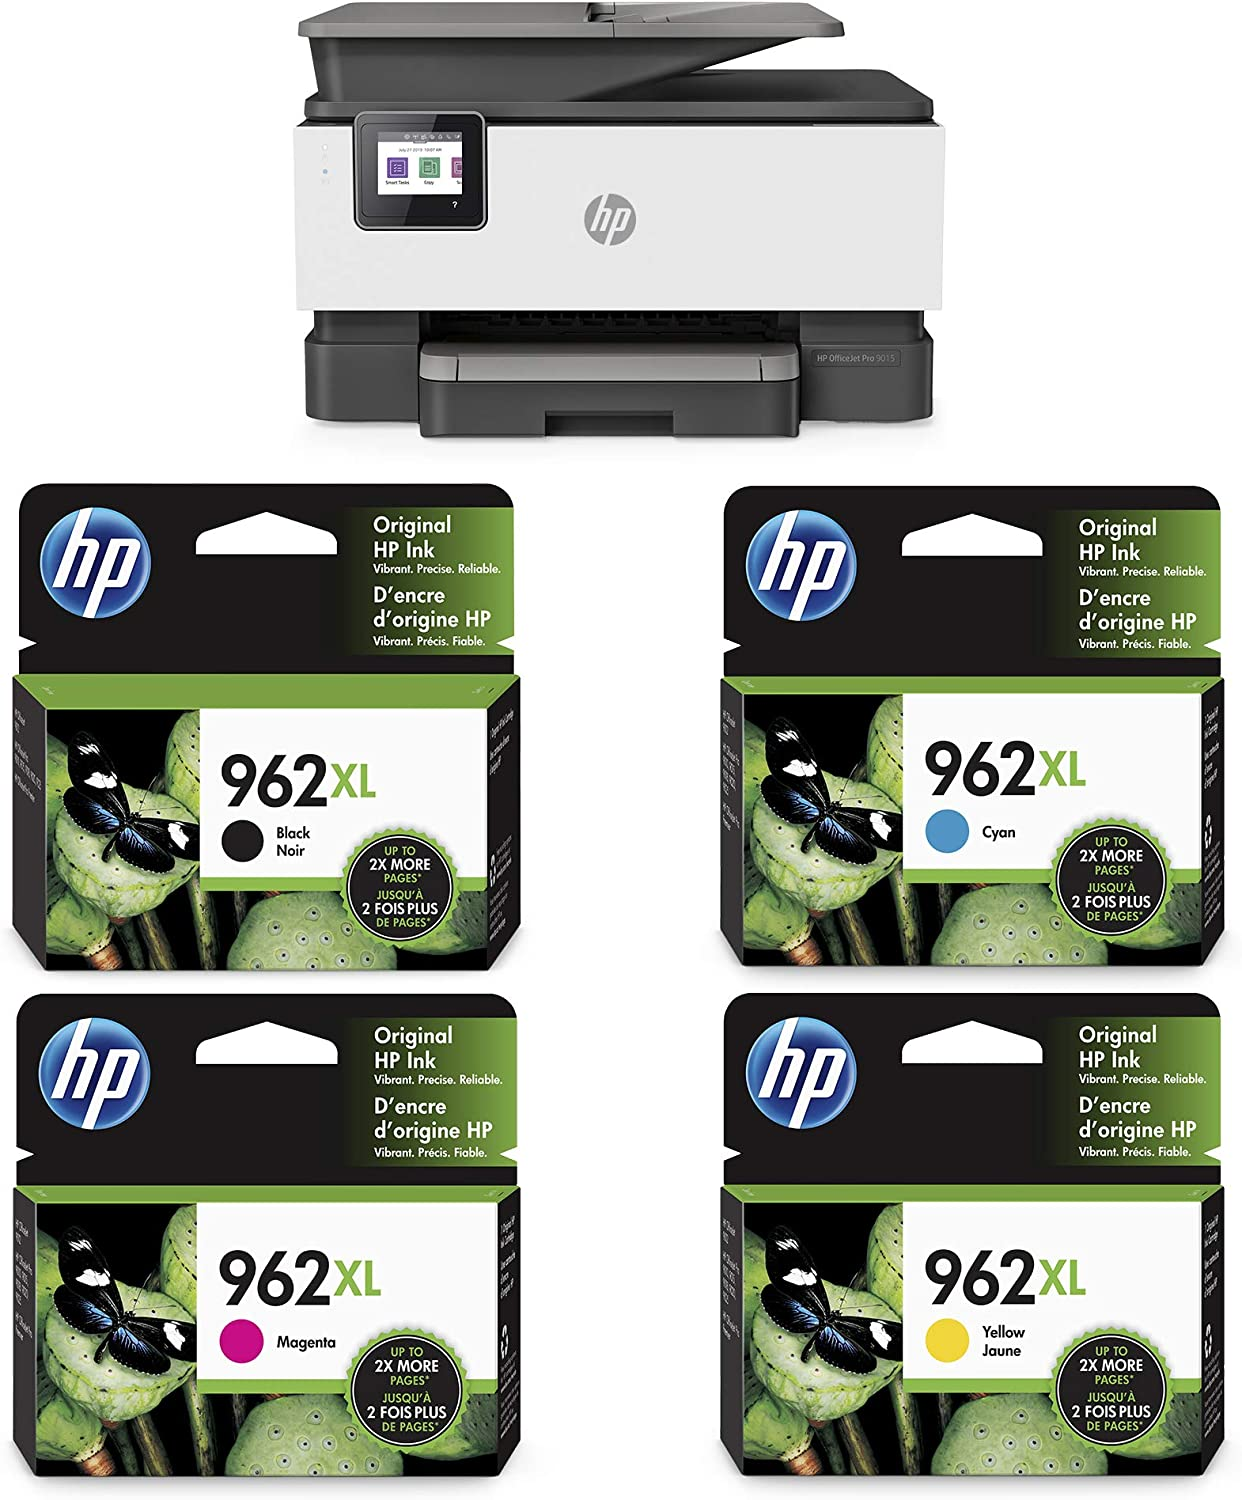 HP OfficeJet Pro 9015 All-in-One Wireless Printer (1KR42A) with XL Ink-Cartridges - 4 Colors